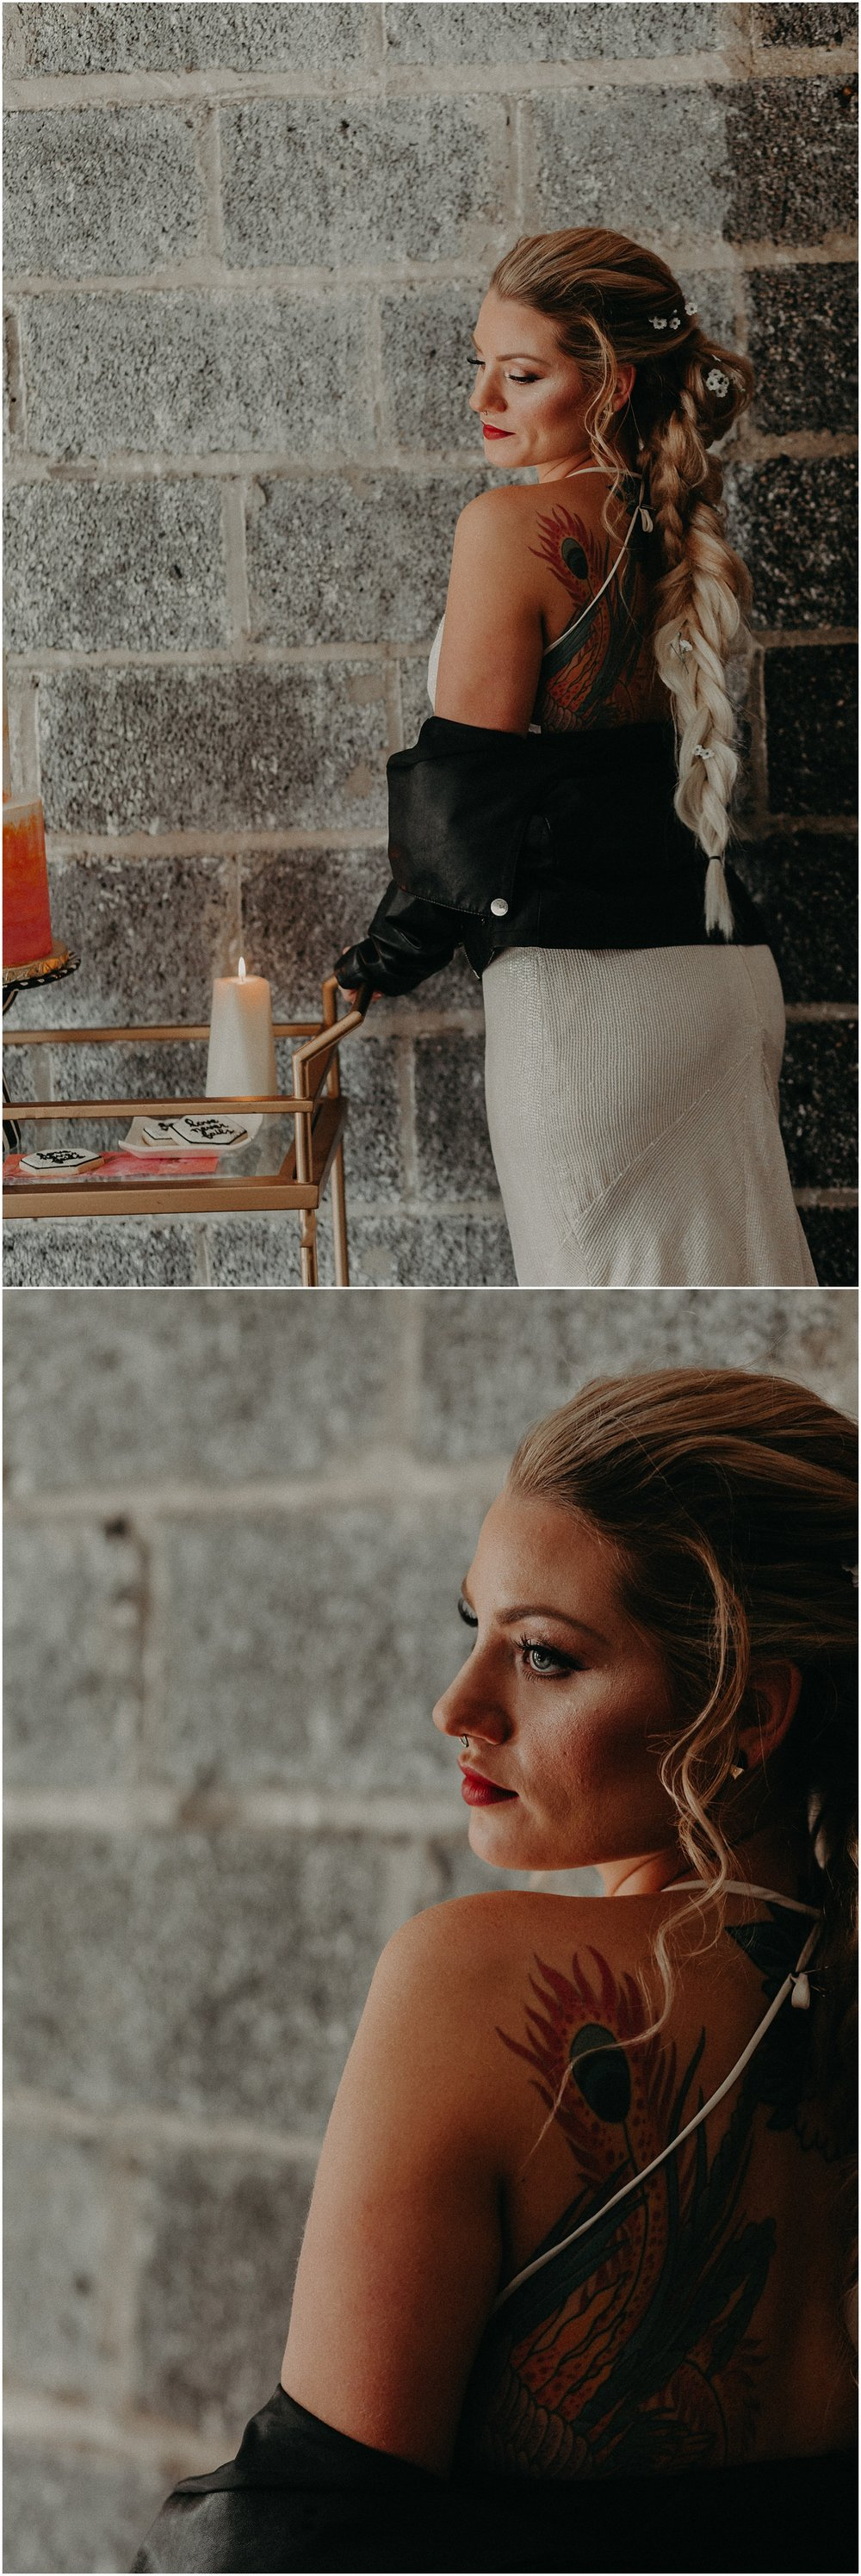 styled shoot-bridal portraits-portraits-bride-rock and roll-industrial-urban-wedding-inspiration-nj-new jersey-nyc-new york city-art-diy wedding_0081.jpg